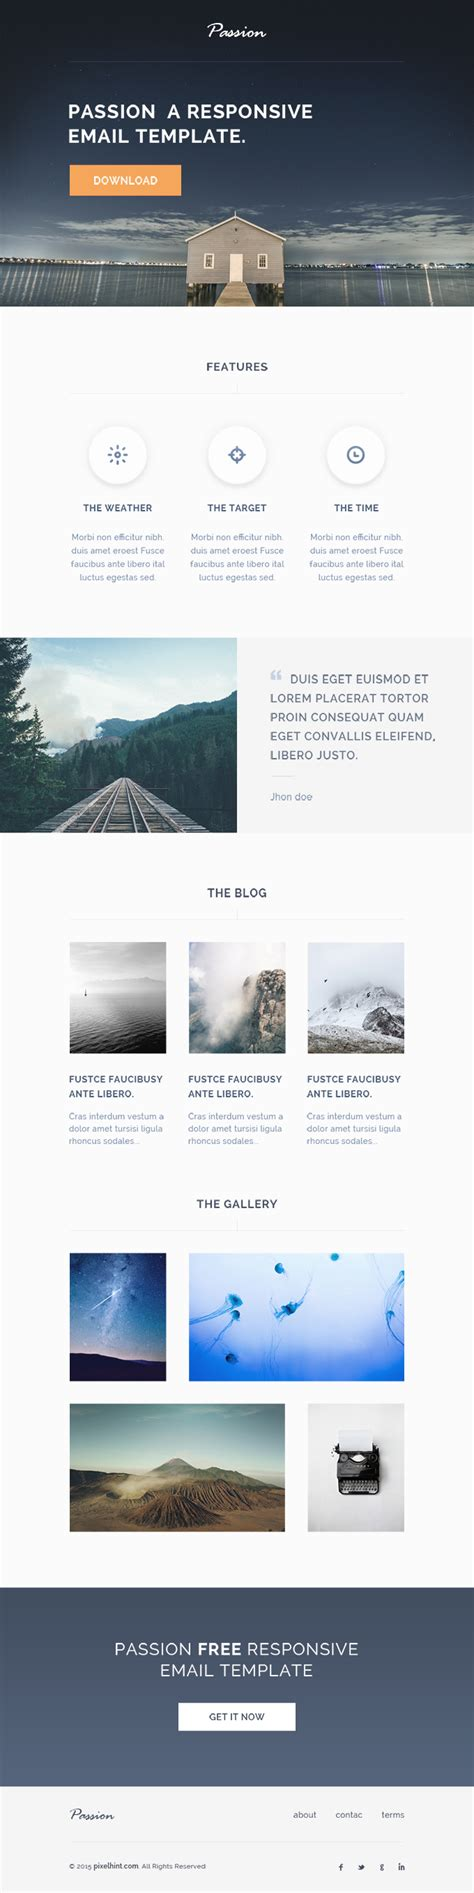 responsive html template 25 best newsletter email templates for free updated for 2018 365 web resources